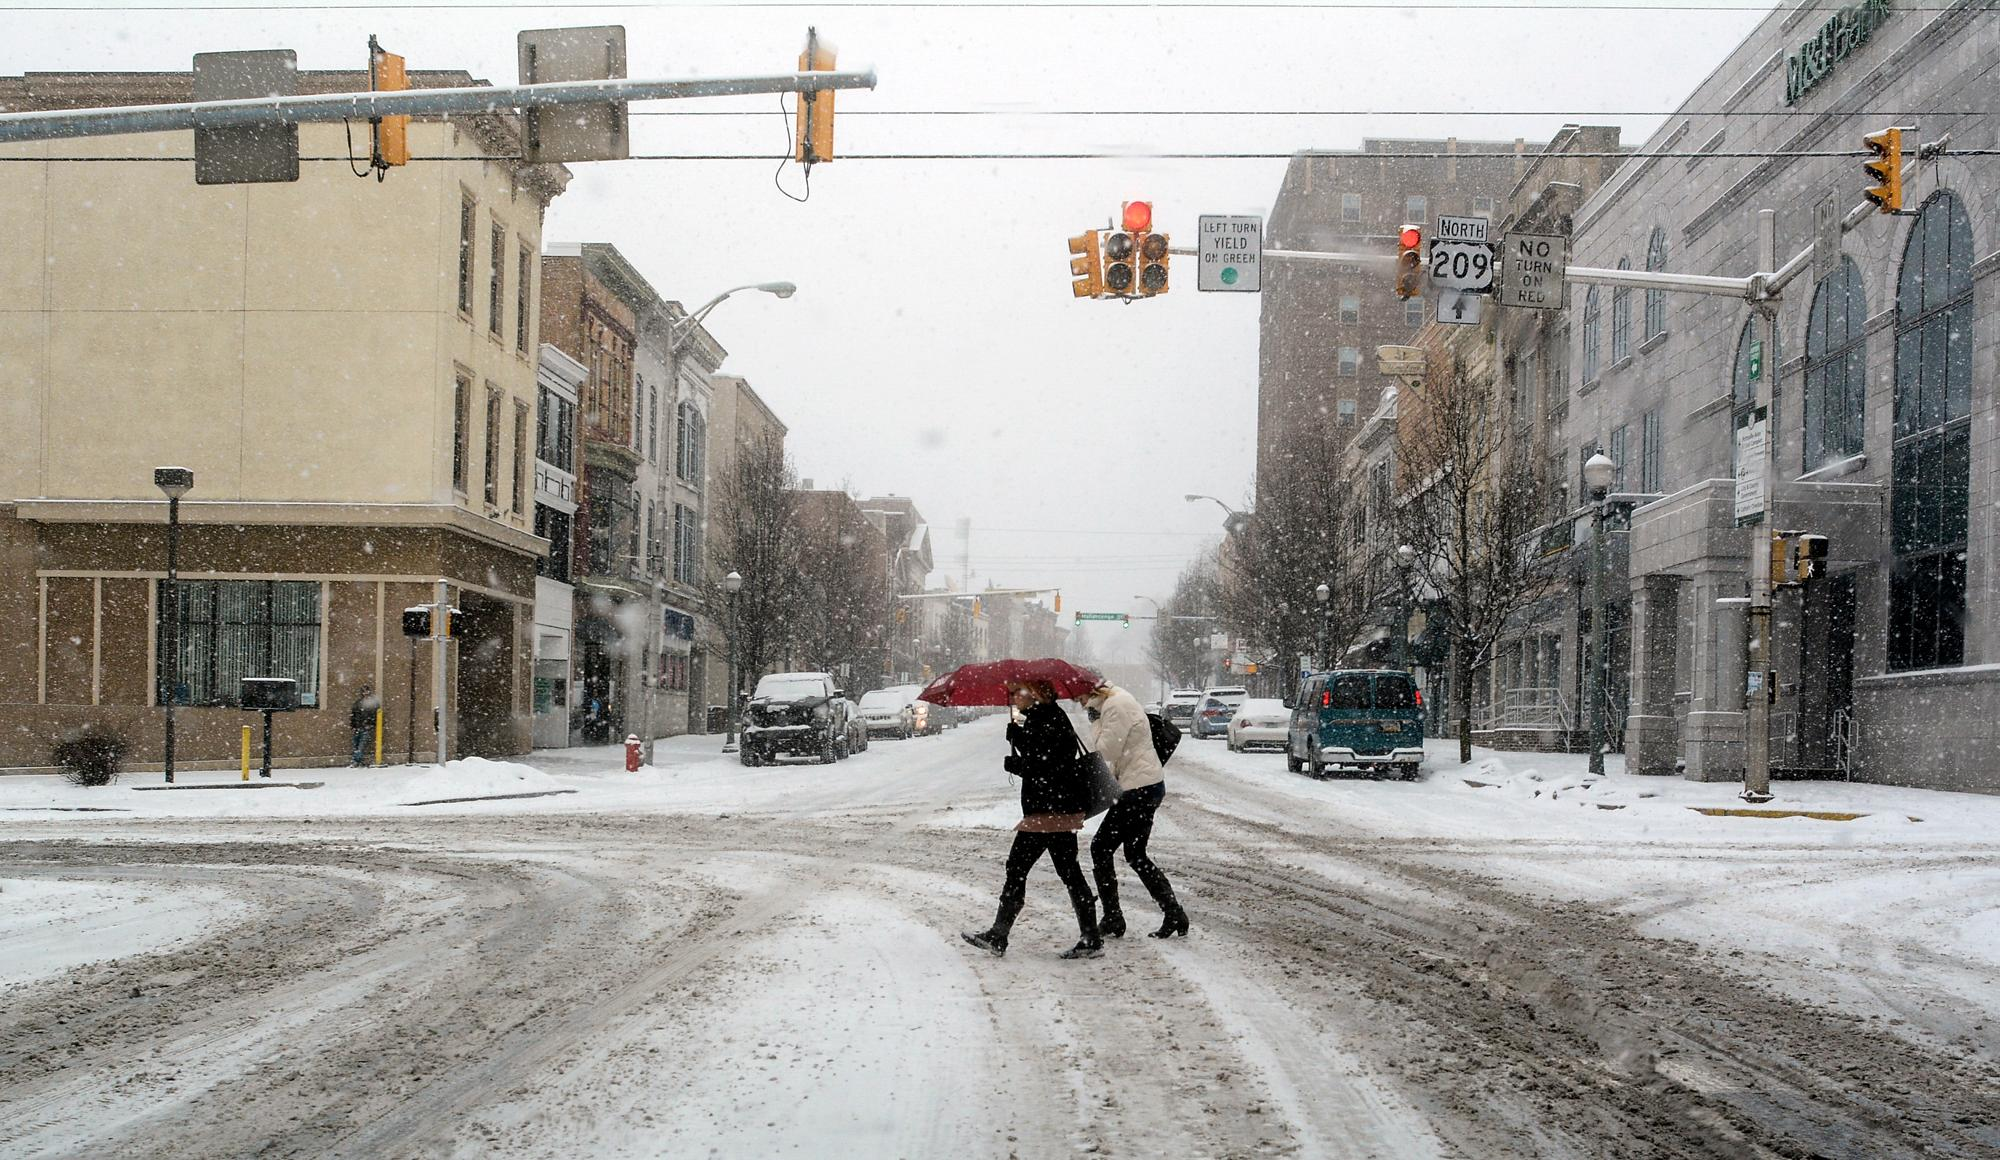 Pedestrians walk across a snow covered Centre Street in Pottsville, Pa., Wednesday, Feb. 20, 2019.(Andy Matsko/Republican-Herald via AP)